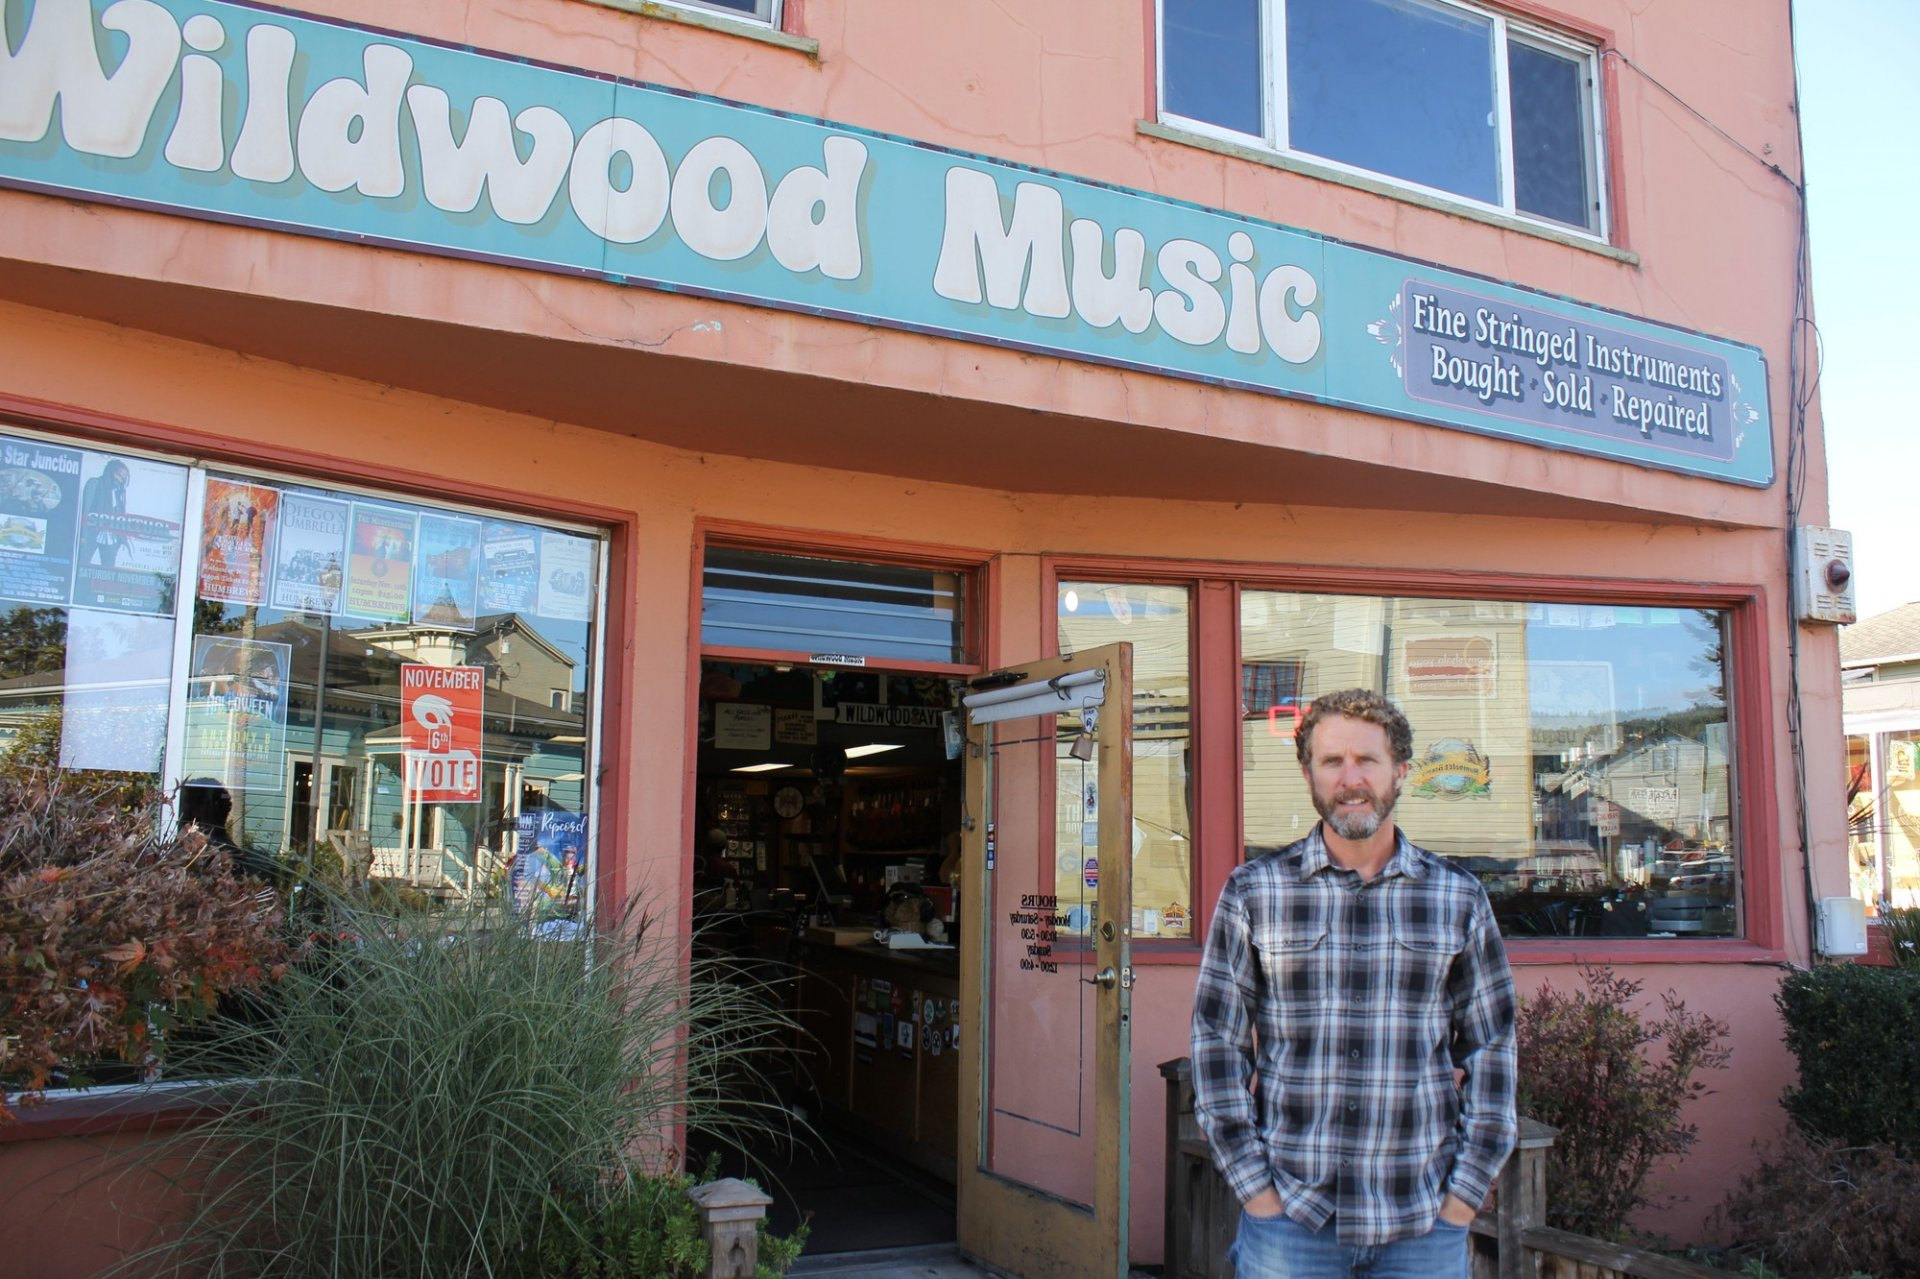 Wildwood Music Store Owner Errol Previde poses in front of the store on Nov. 5. Pervide took over the store on its 30th anniversary.